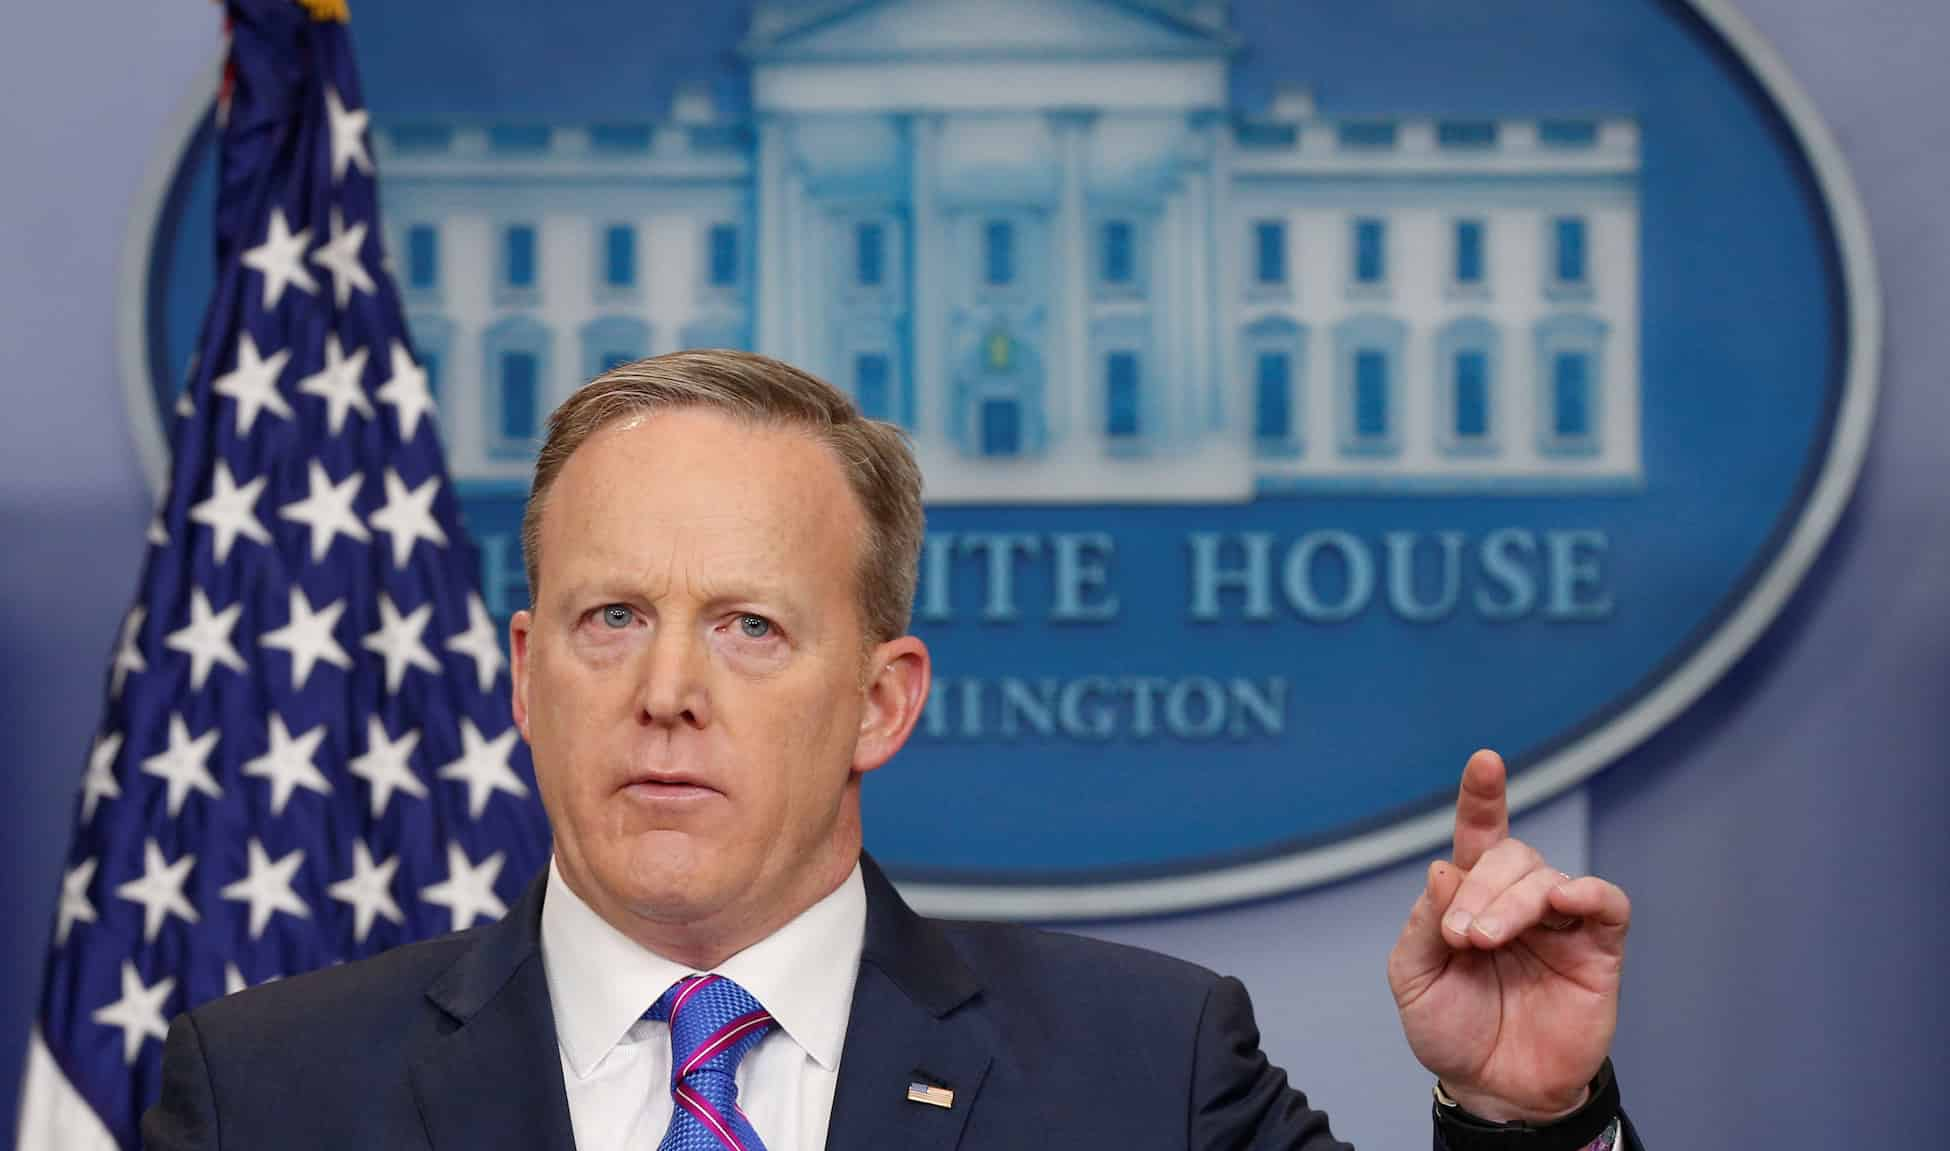 Essay Thesis Sean Spicer Is Wrong Medical Marijuana Could Help Solve The Opioid Crisis   Vice News Easy Persuasive Essay Topics For High School also National Honor Society High School Essay Sean Spicer Is Wrong Medical Marijuana Could Help Solve The Opioid  Narrative Essay Examples High School